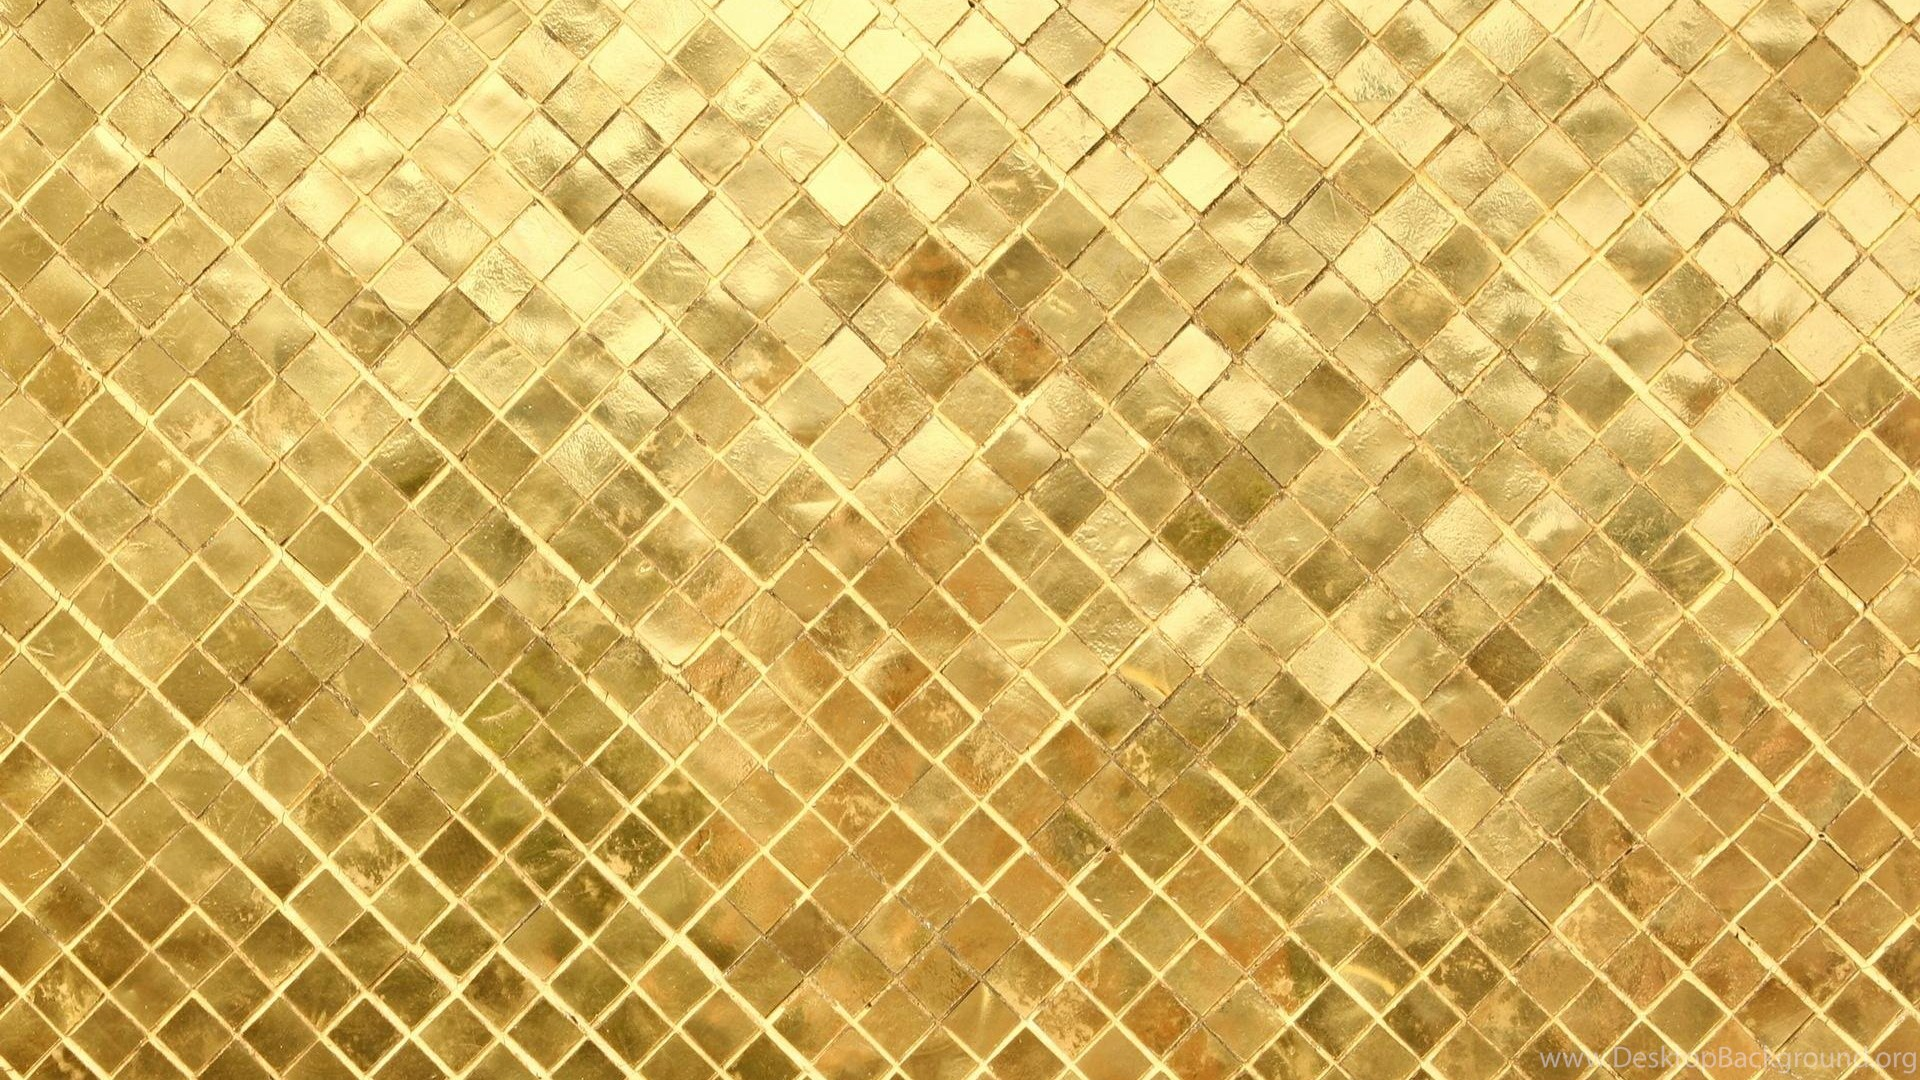 1920x1200px Gold Texture Gold Wallpapers Hd Desktop Background